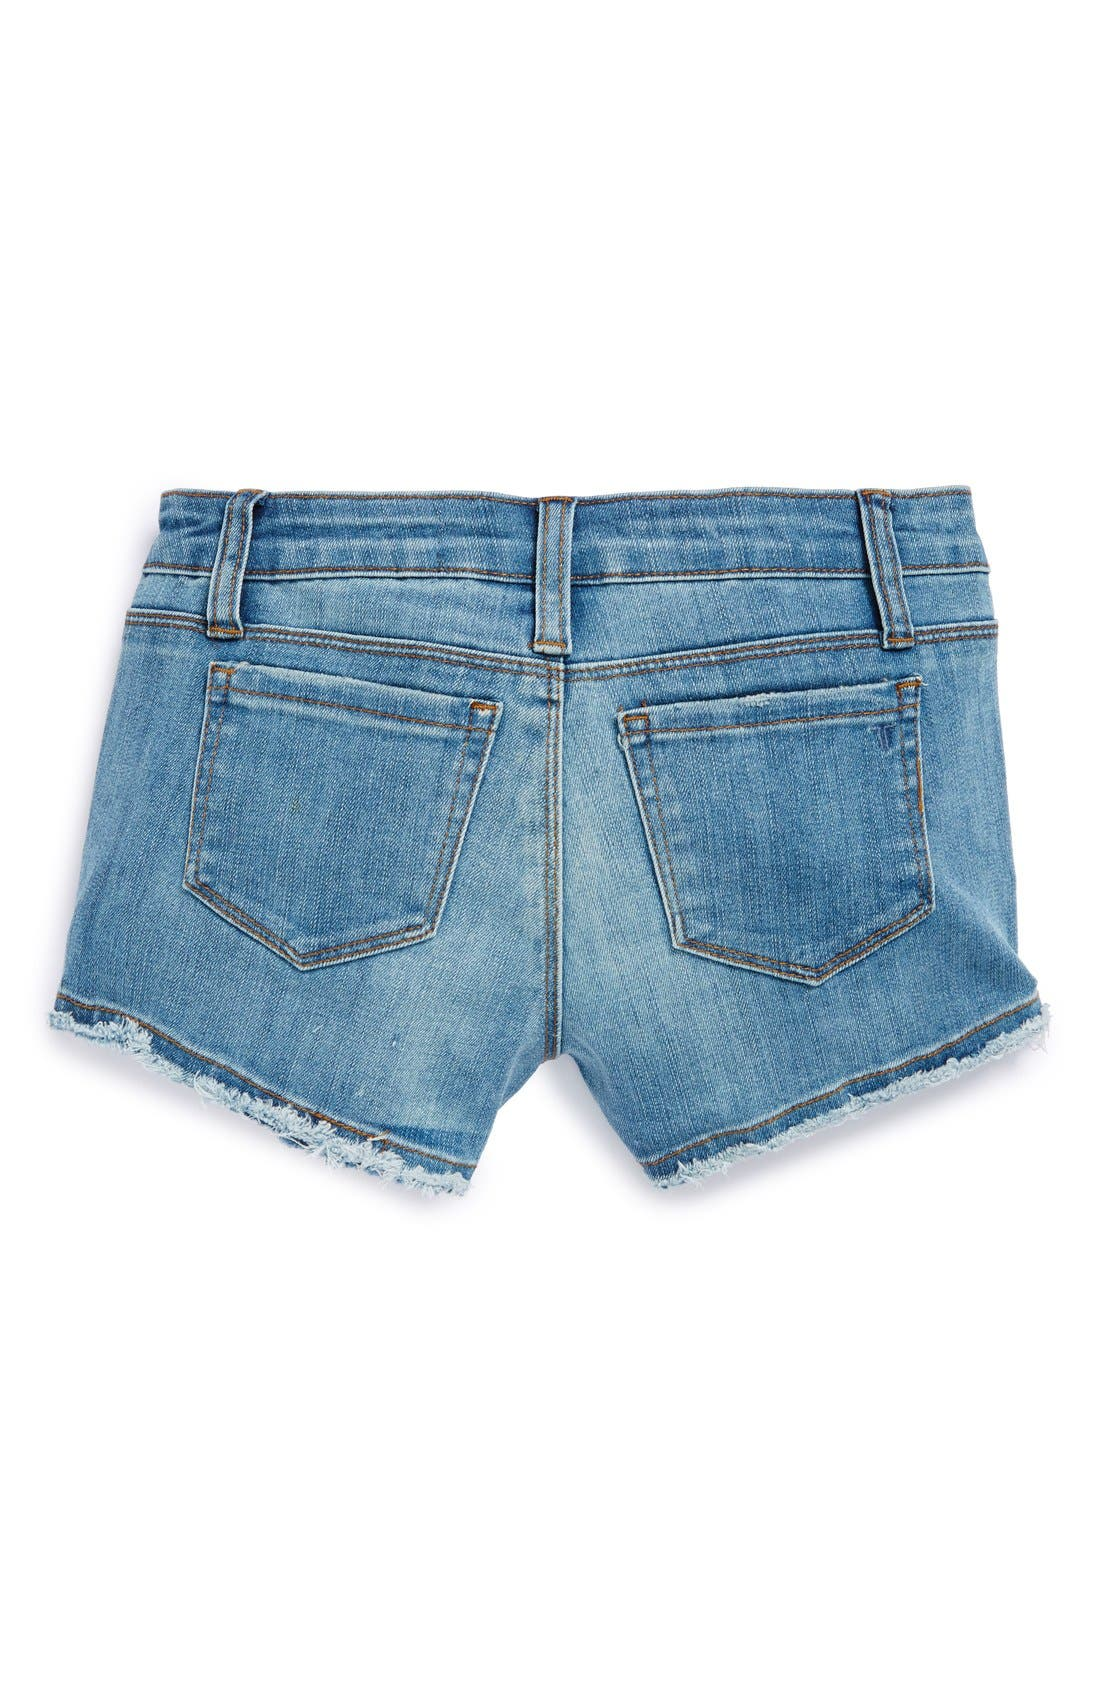 Alternate Image 1 Selected - Tractr Frayed Shorts (Big Girls)